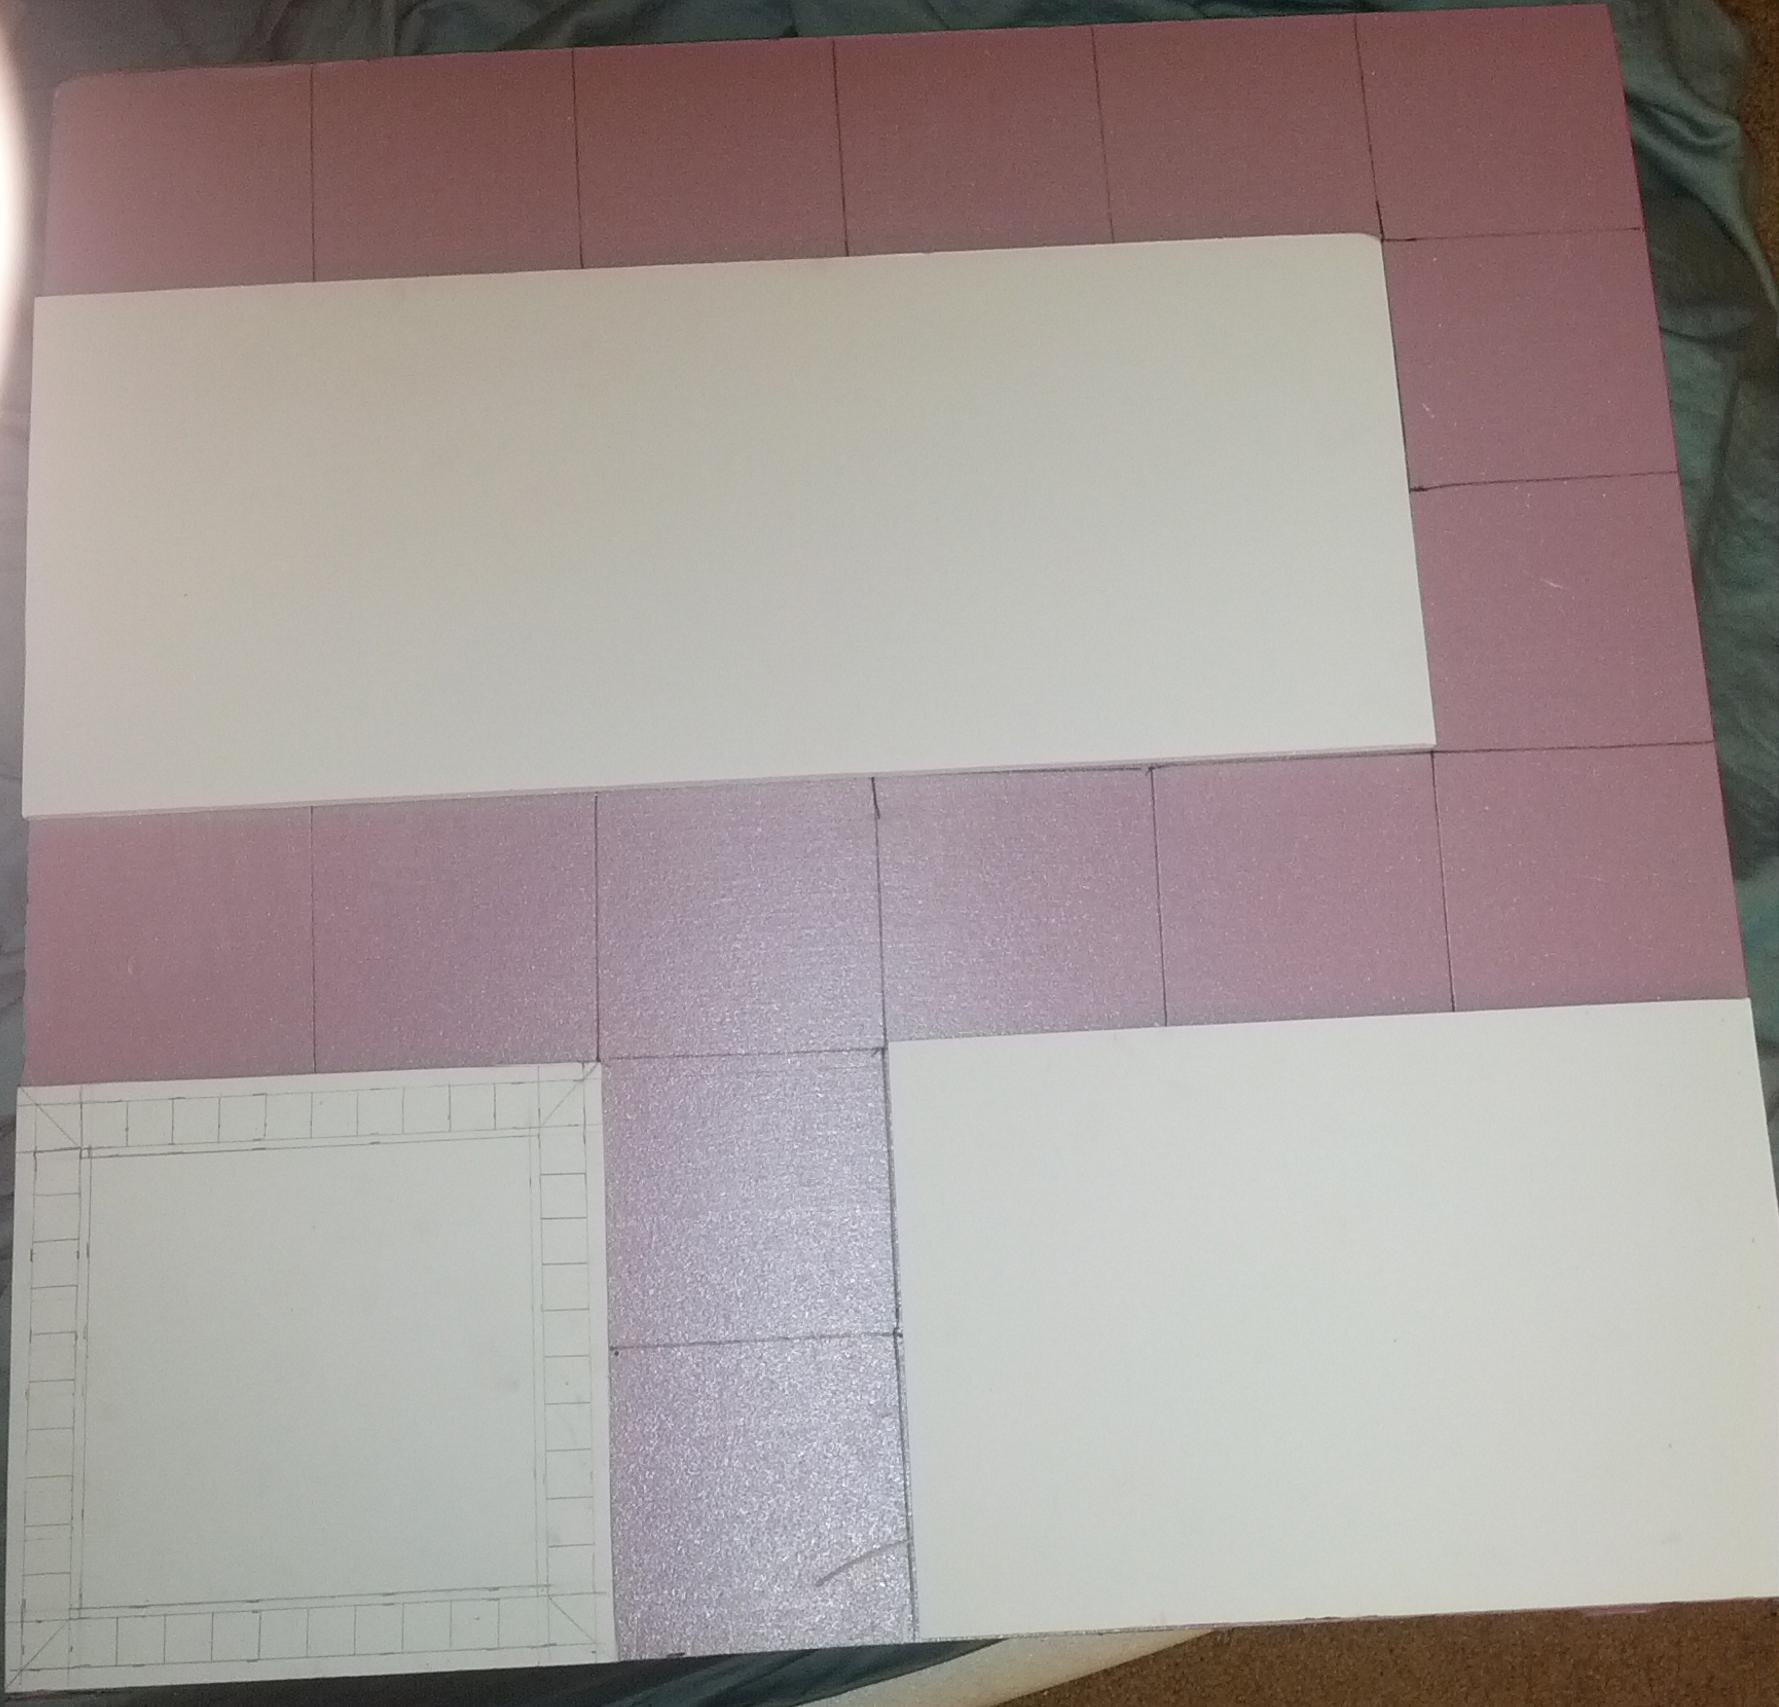 Initial Layout and Drawing